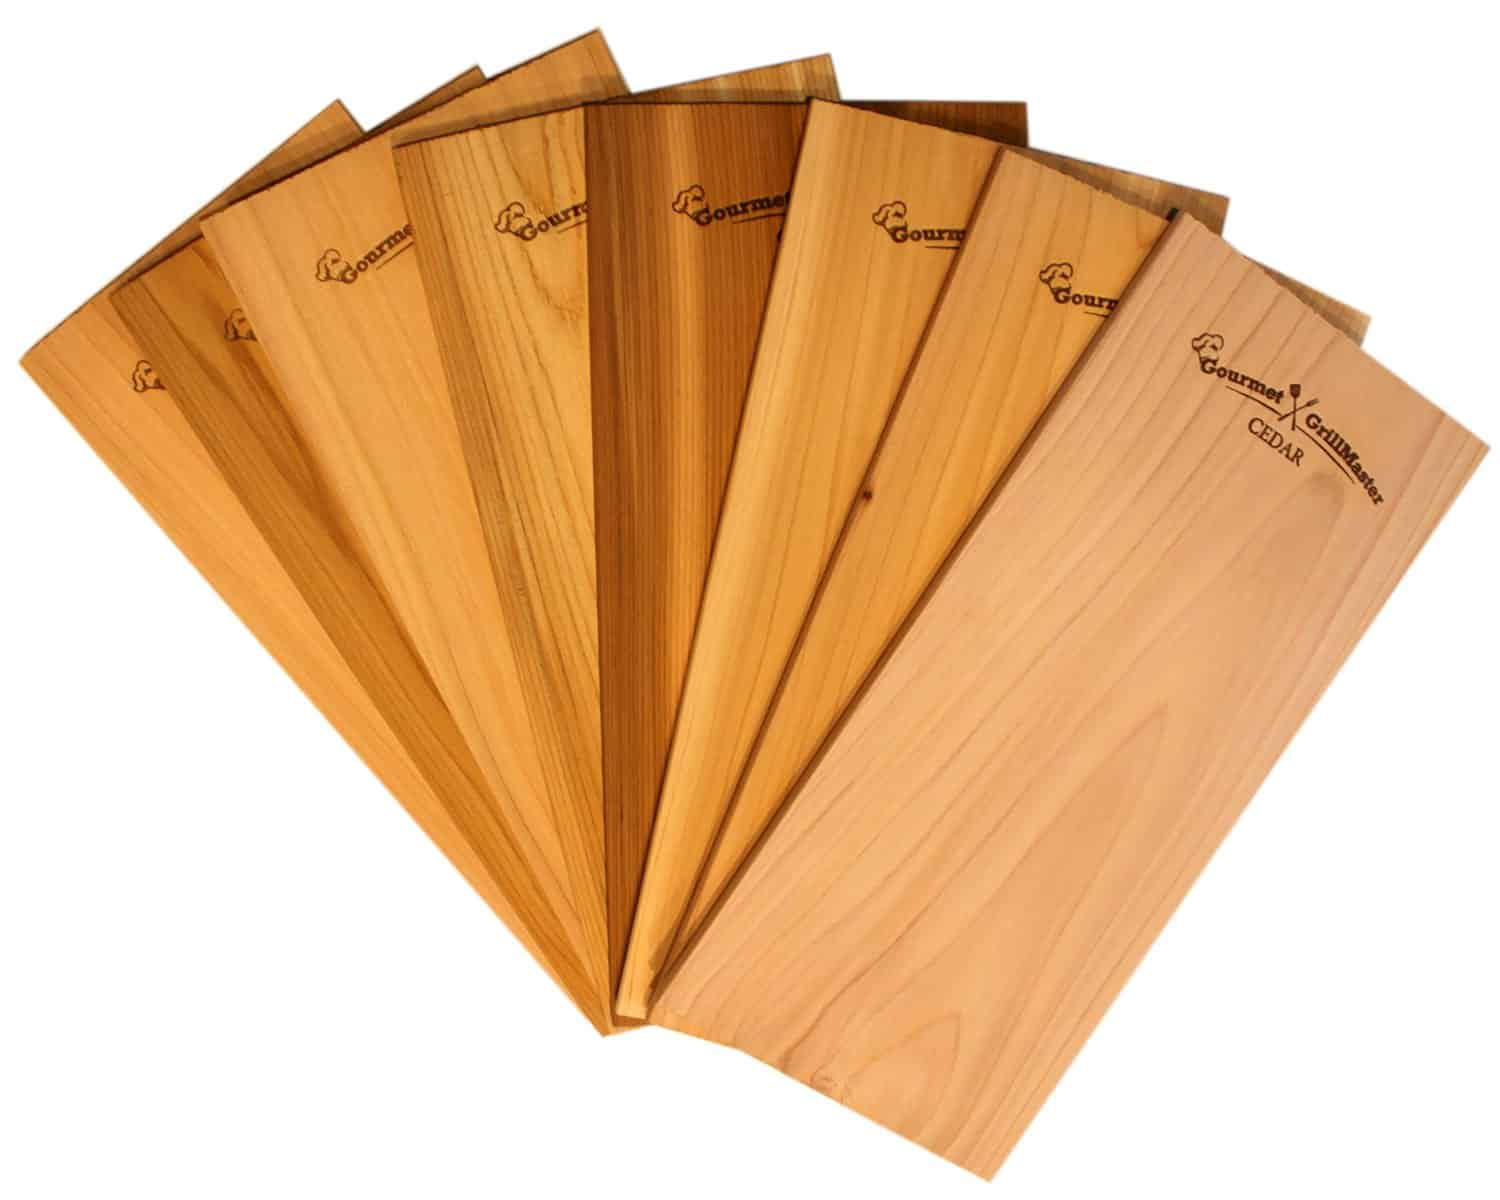 Grill Planks Which Types Of Wood Should I Pair With My